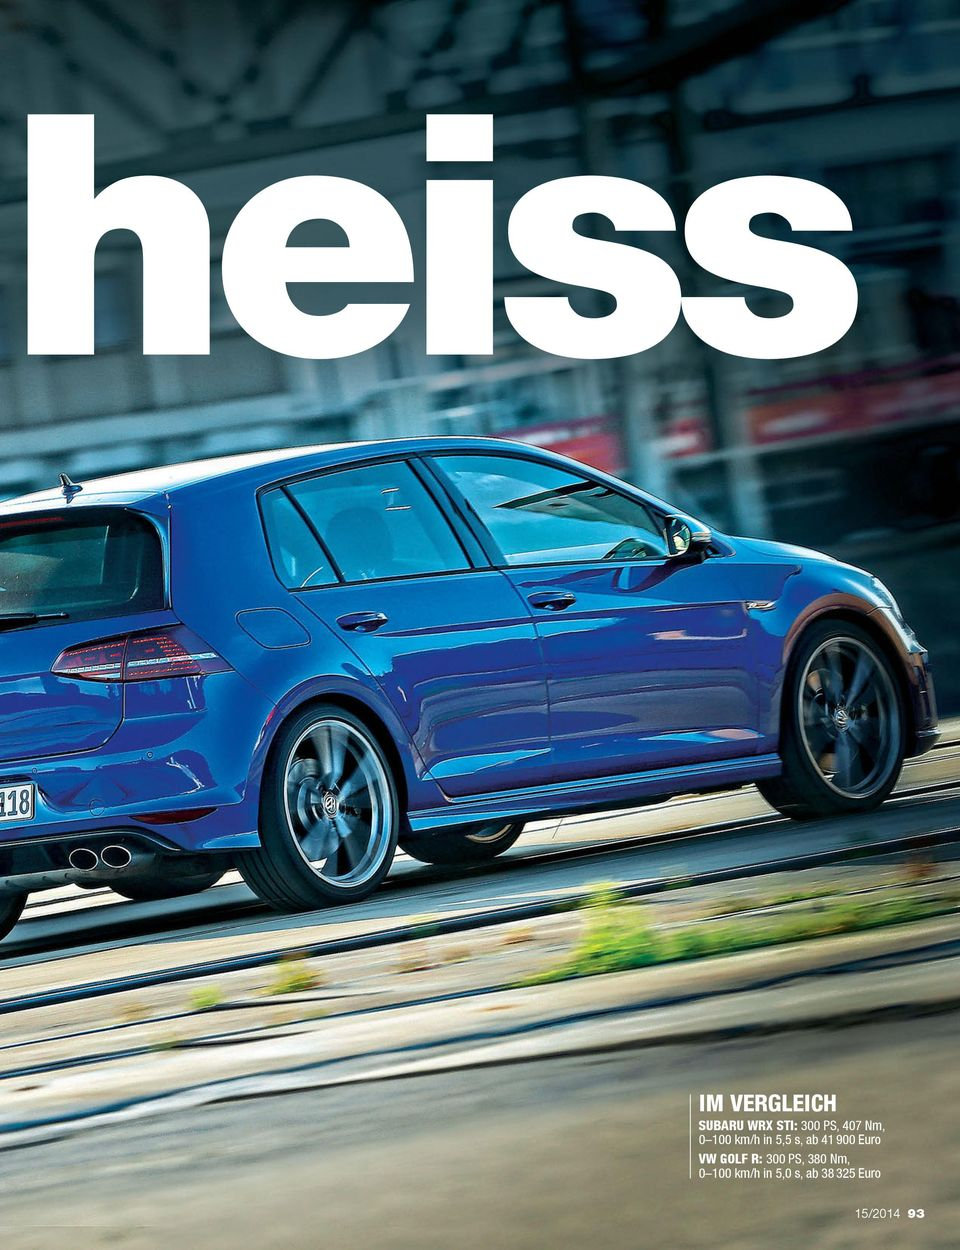 900 Euro VW GOLF R: 300 PS, 380 Nm, 0